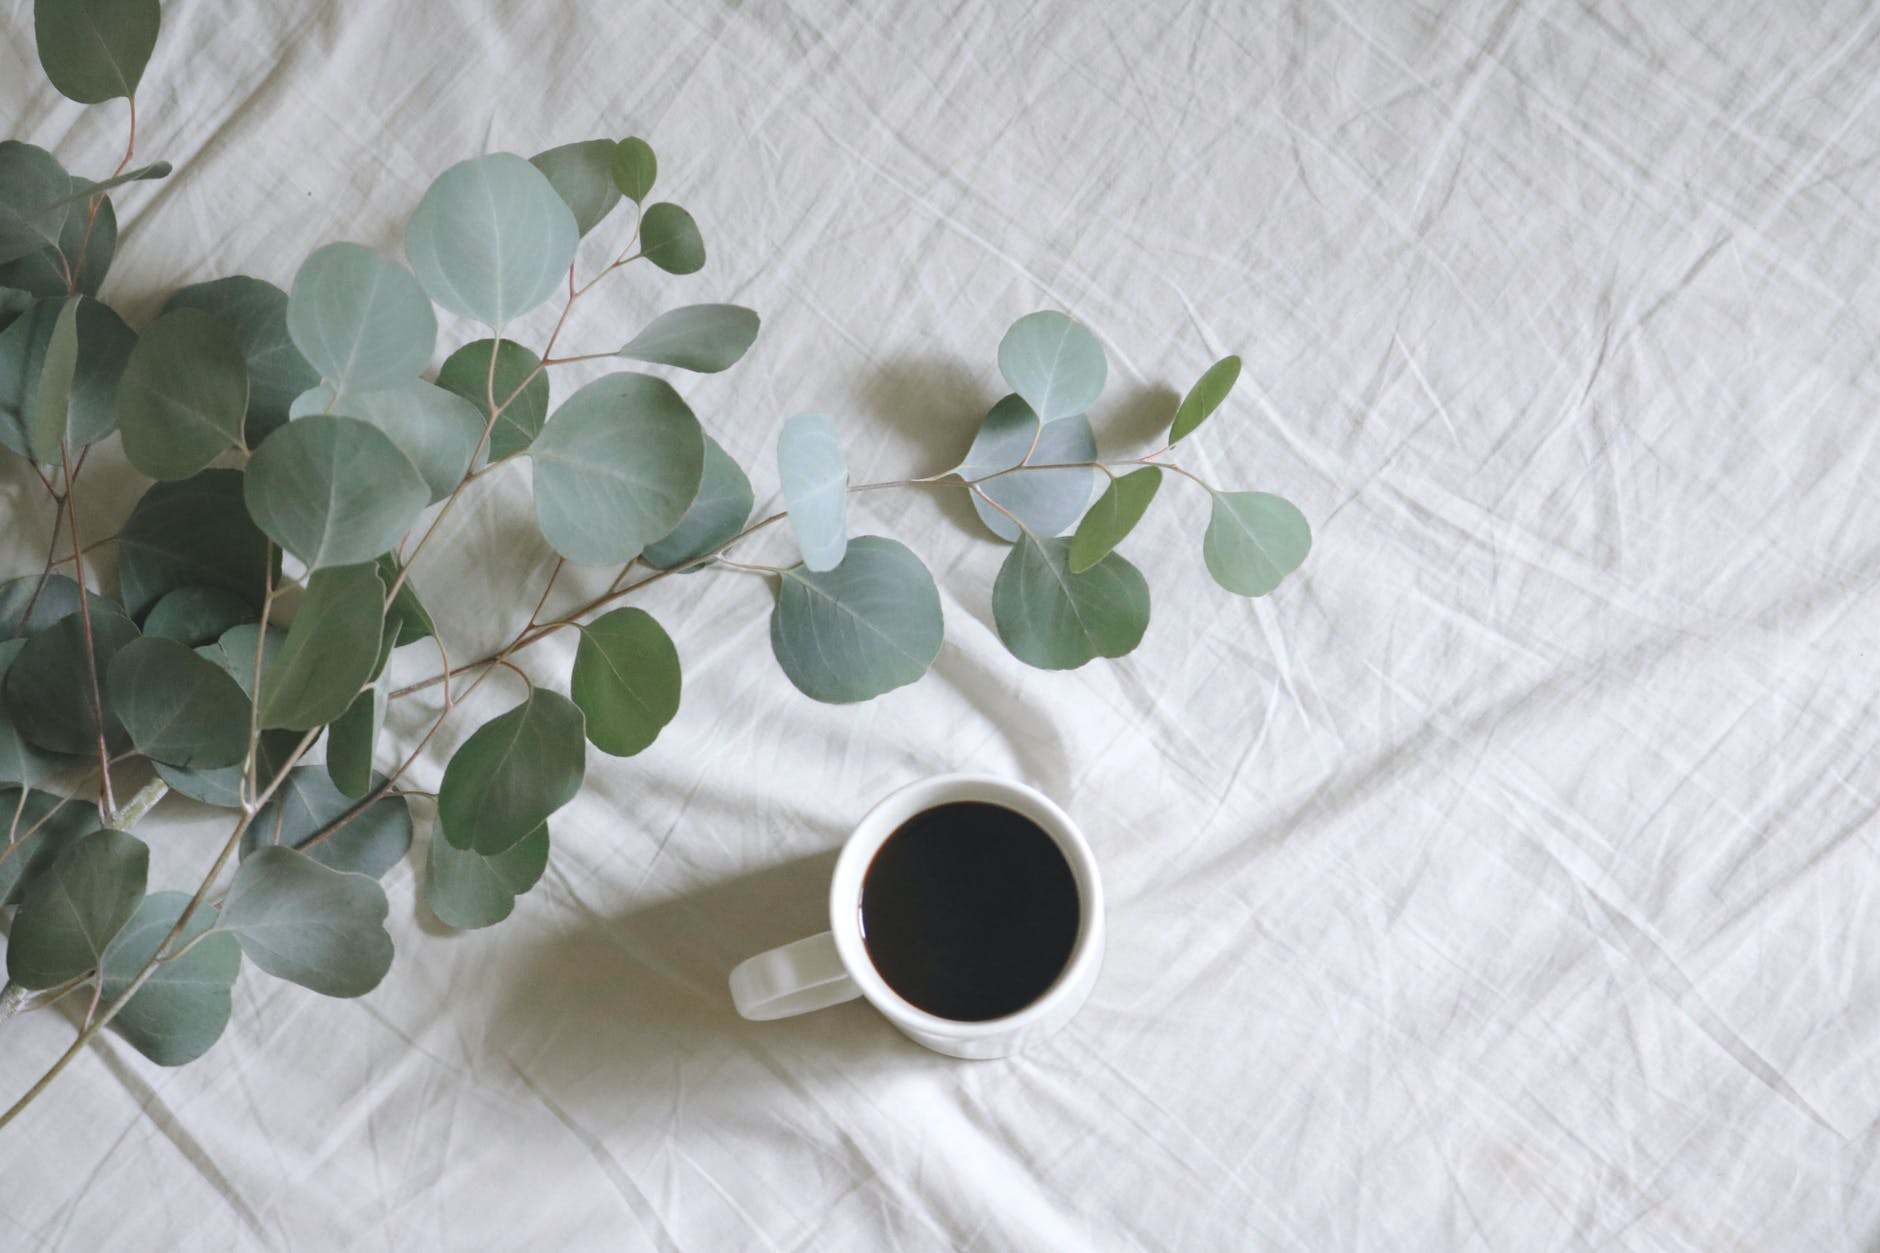 flat lay photography of white mug beside green leafed plants on linen, sustainable fabric